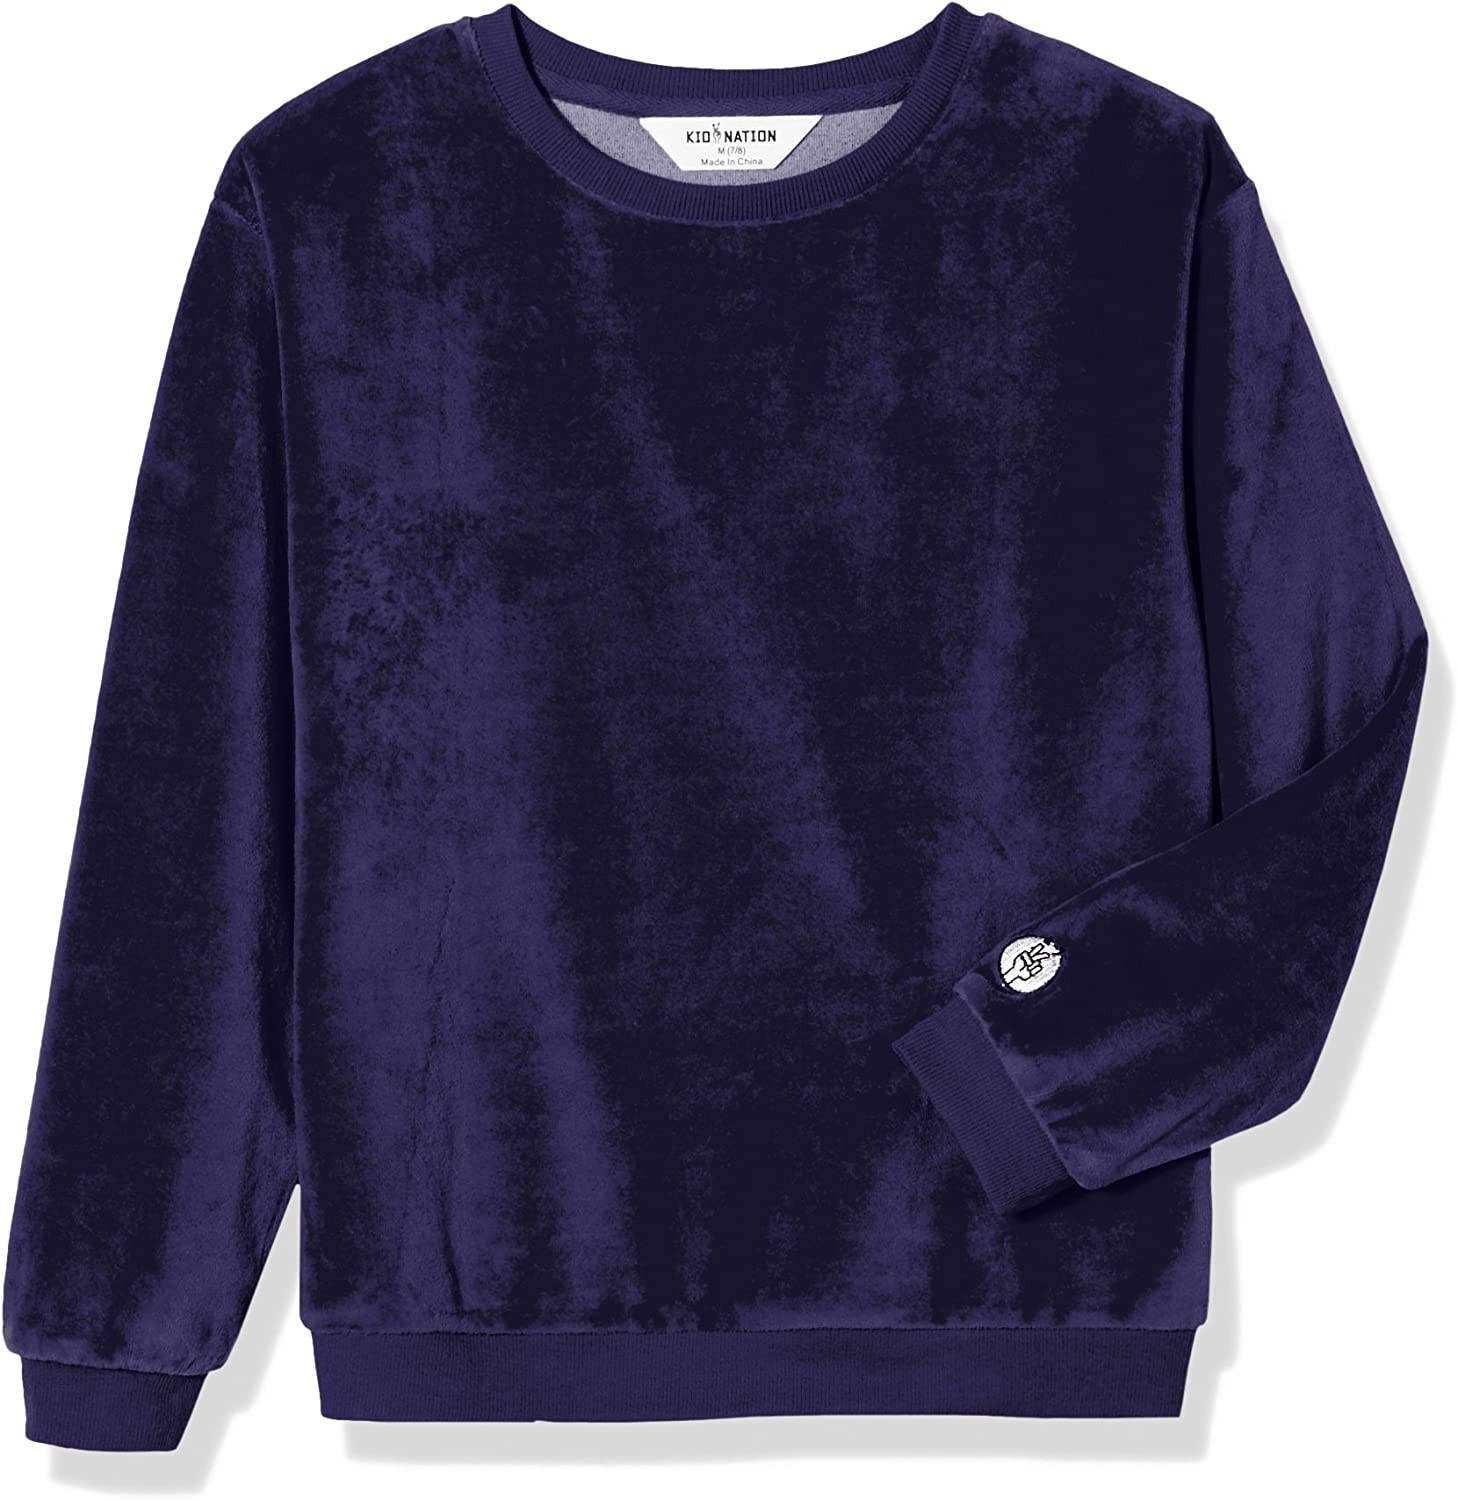 Kid Nation Kids Cozy Soft Velour Sweatshirt Light Weight Pullover for Boys and Girls